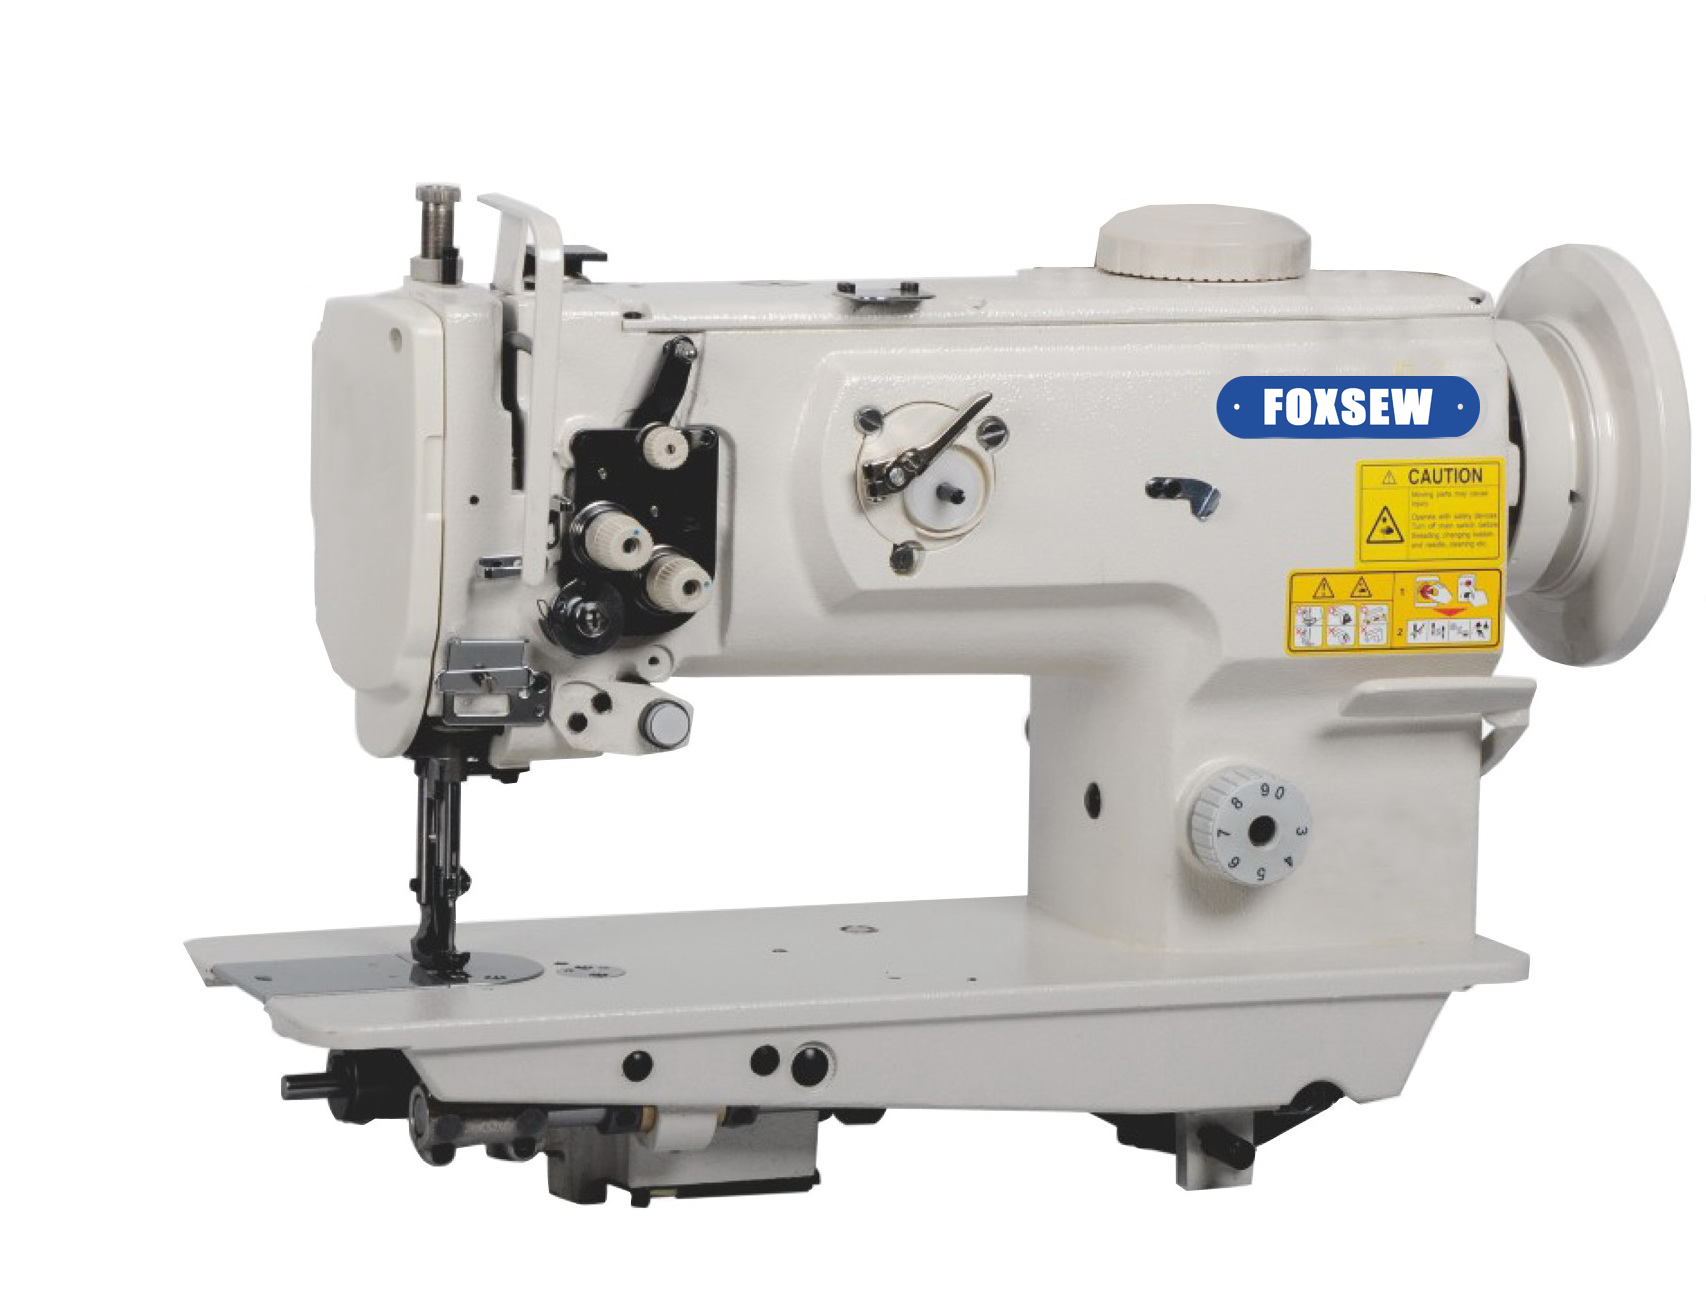 KD-1541S Single Needle Unison Feed Walking Foot Heavy Duty Lockstitch Sewing Machine